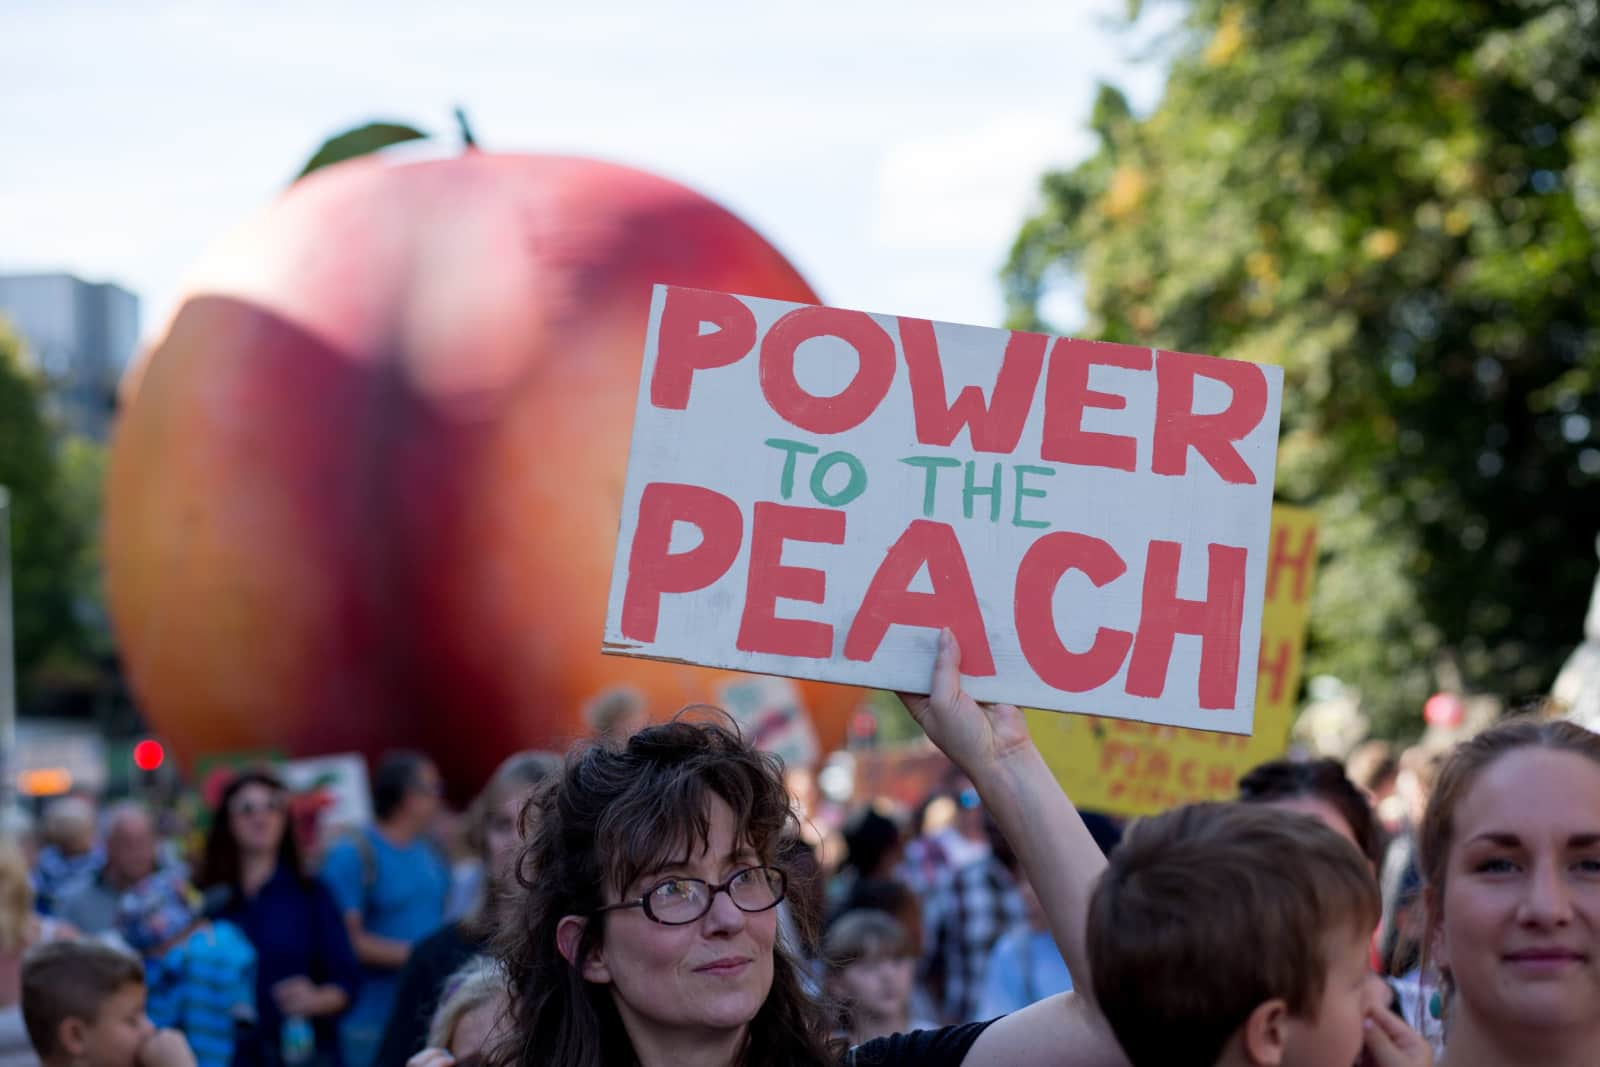 A giant peach was paraded through Cardiff in September 2016.